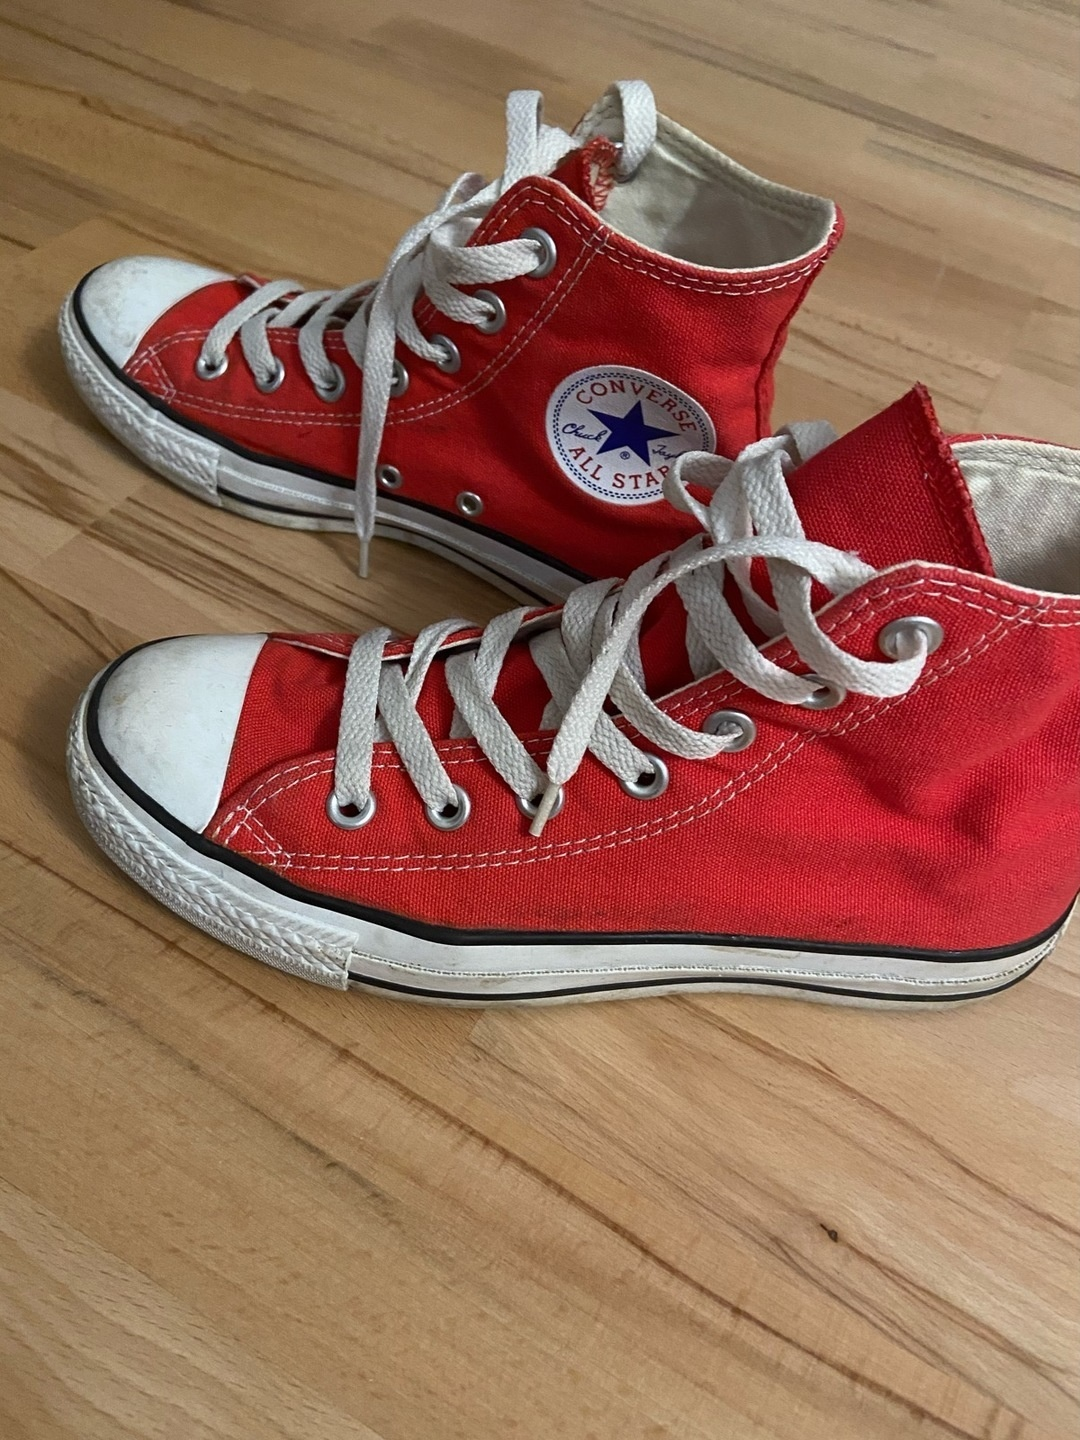 Women's sneakers - CONVERSE photo 1